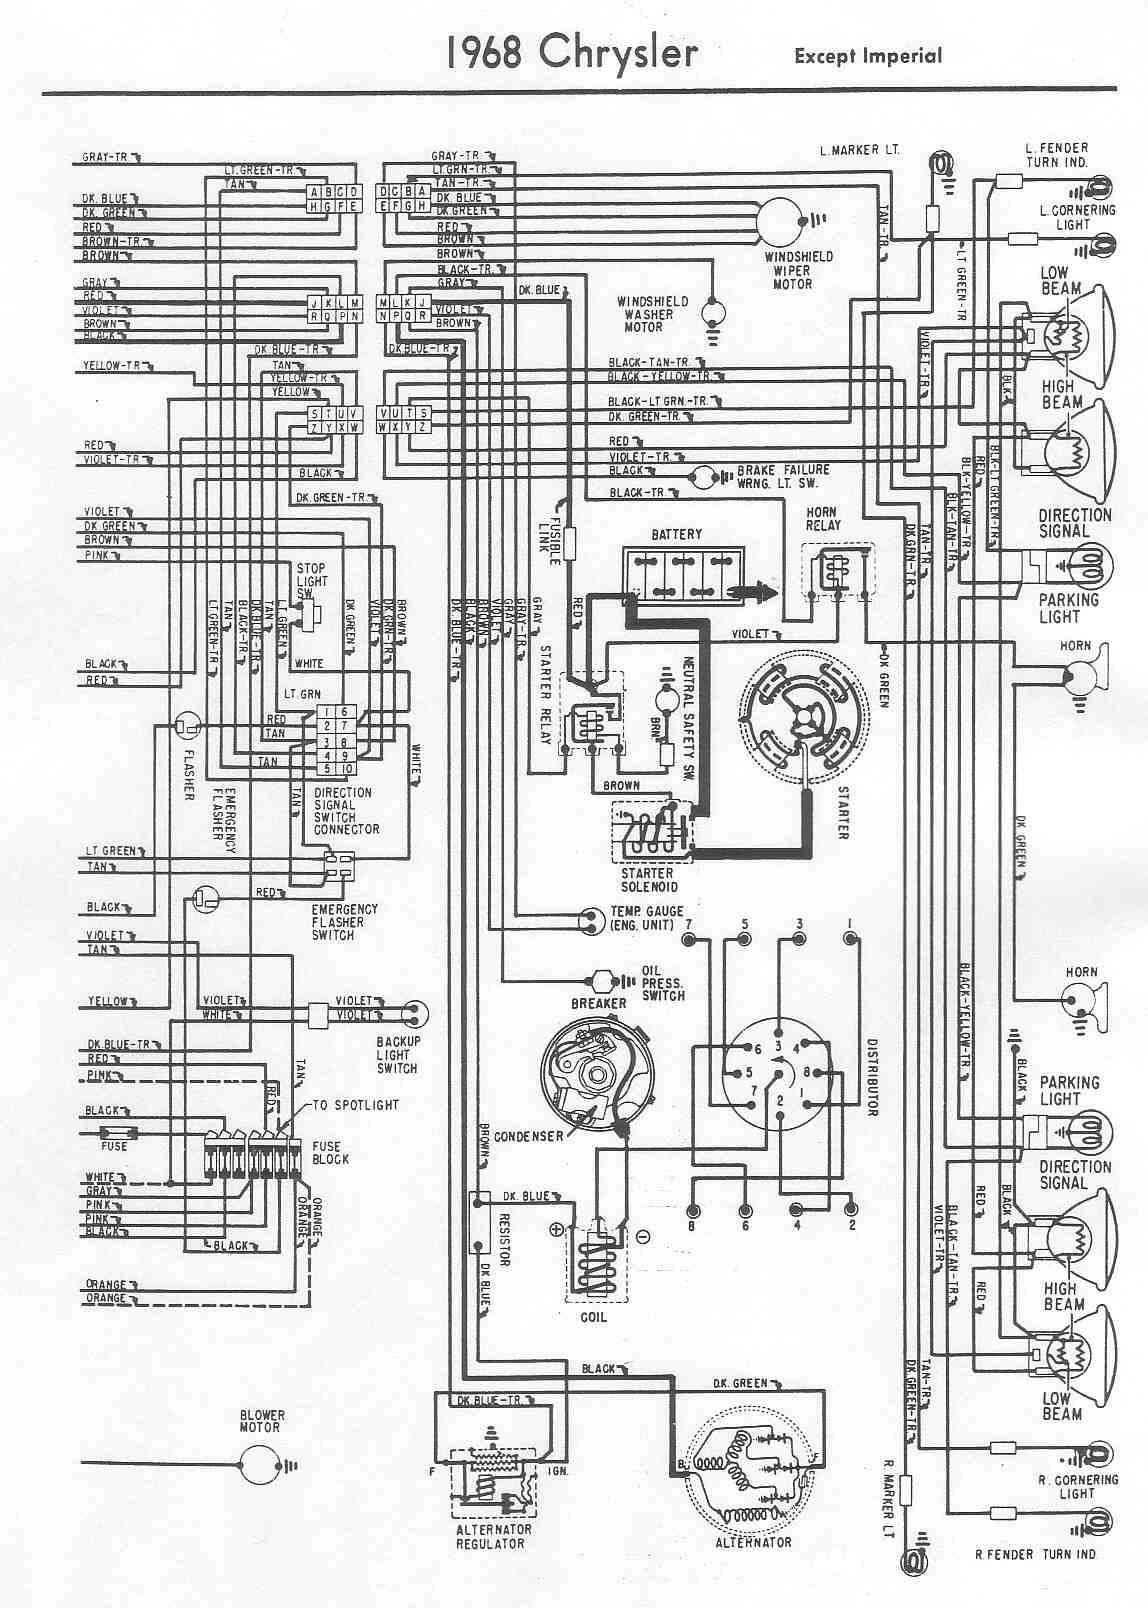 68 Cadillac Wiring Diagram Bookmark About 1994 Deville Wire 1968 Data Rh 3 6 19 Reisen Fuer Meister De